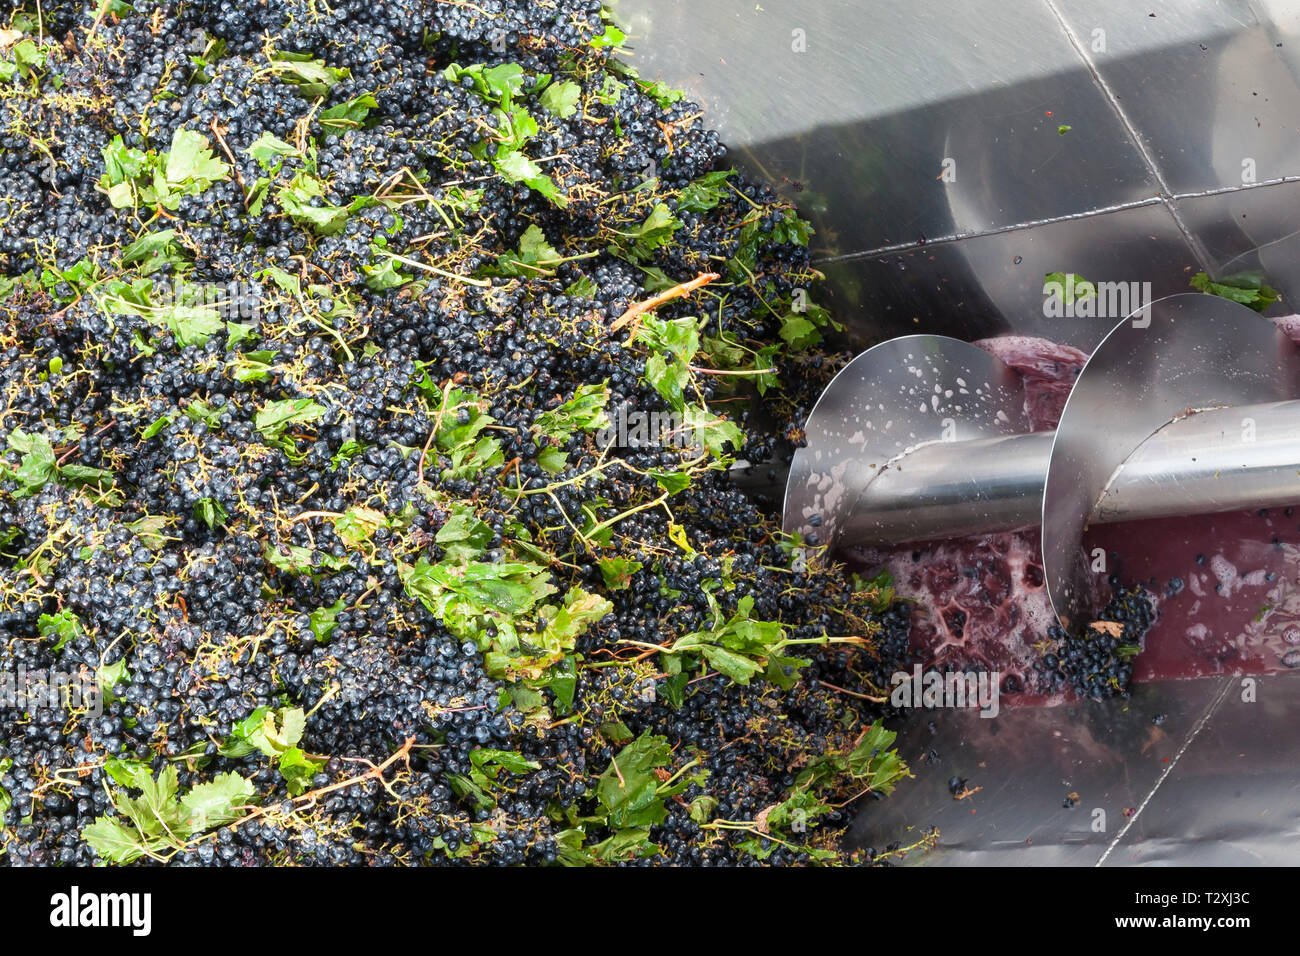 Detail of harvested shiraz grapes passing through the mechanical grape crusher or press at a winery, South African red wine production, Robertson Wine Stock Photo